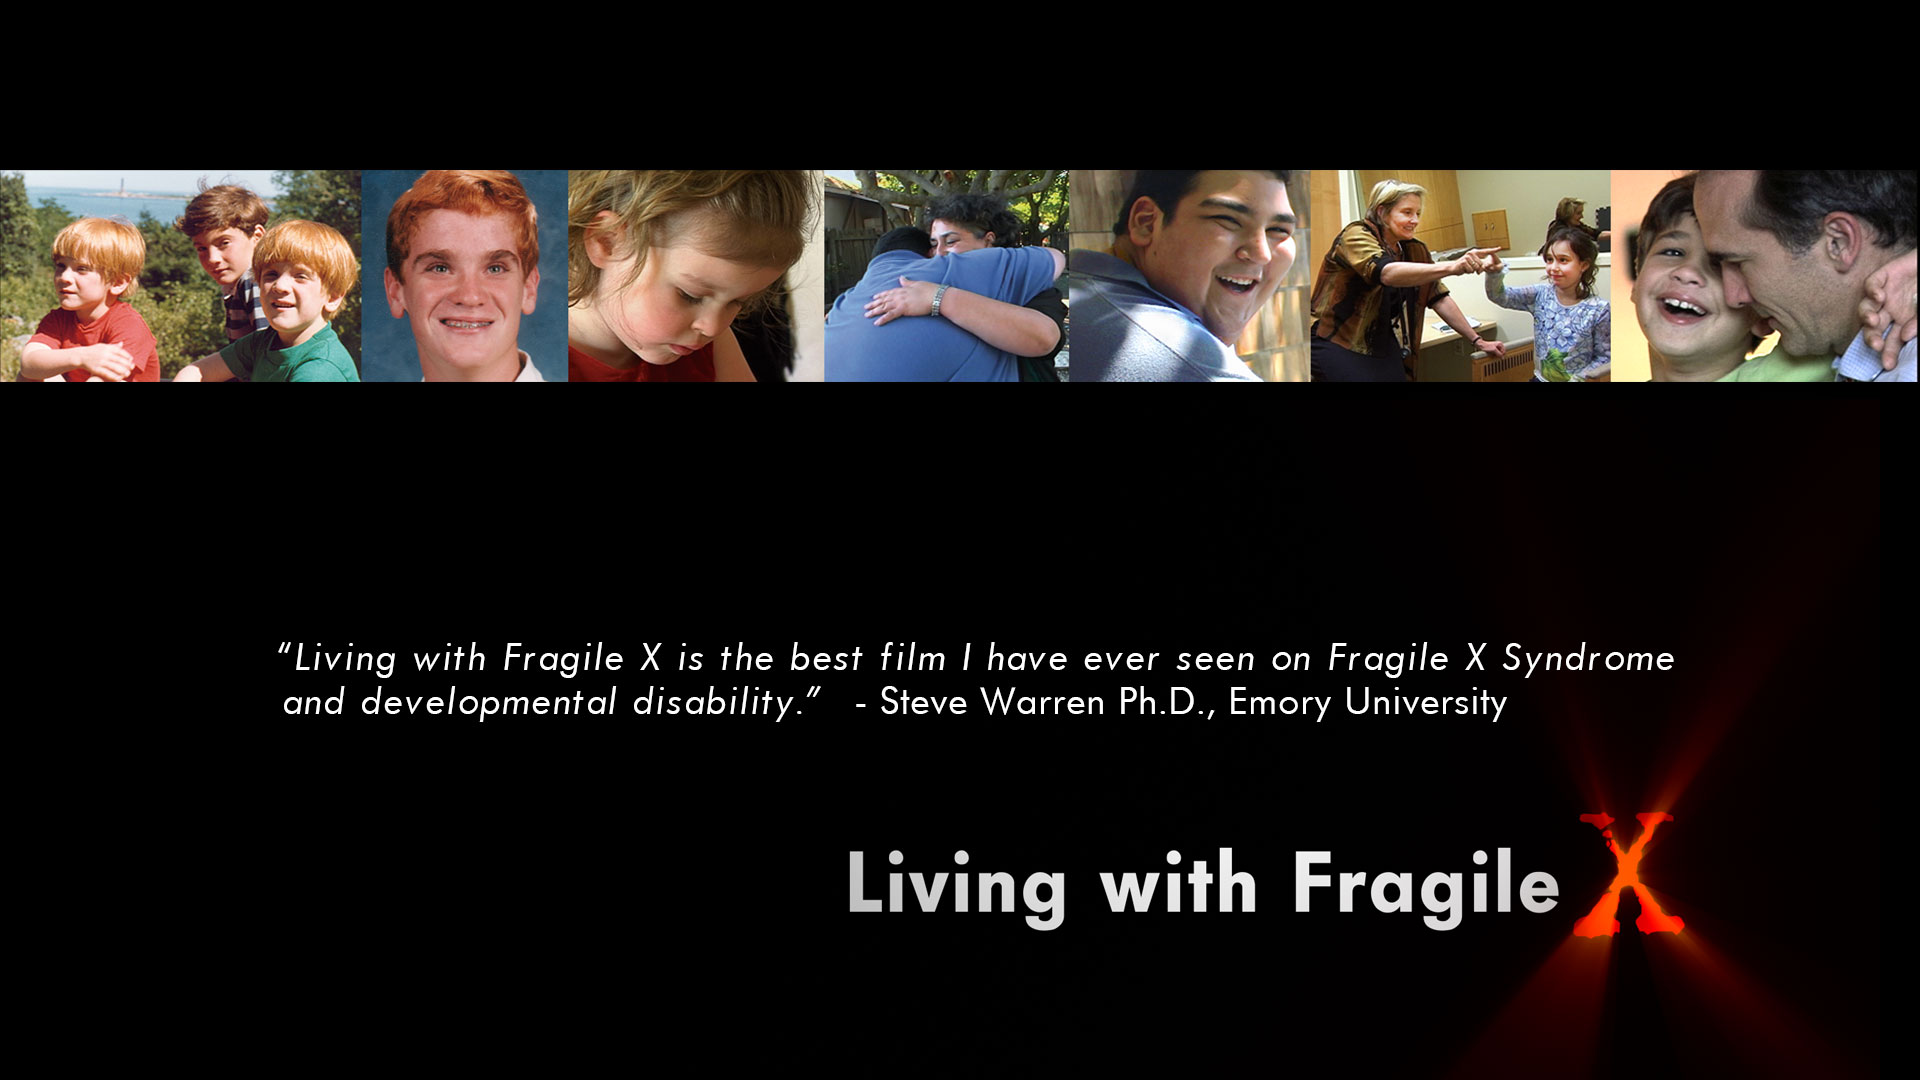 Watch Living with Fragile X Documentary